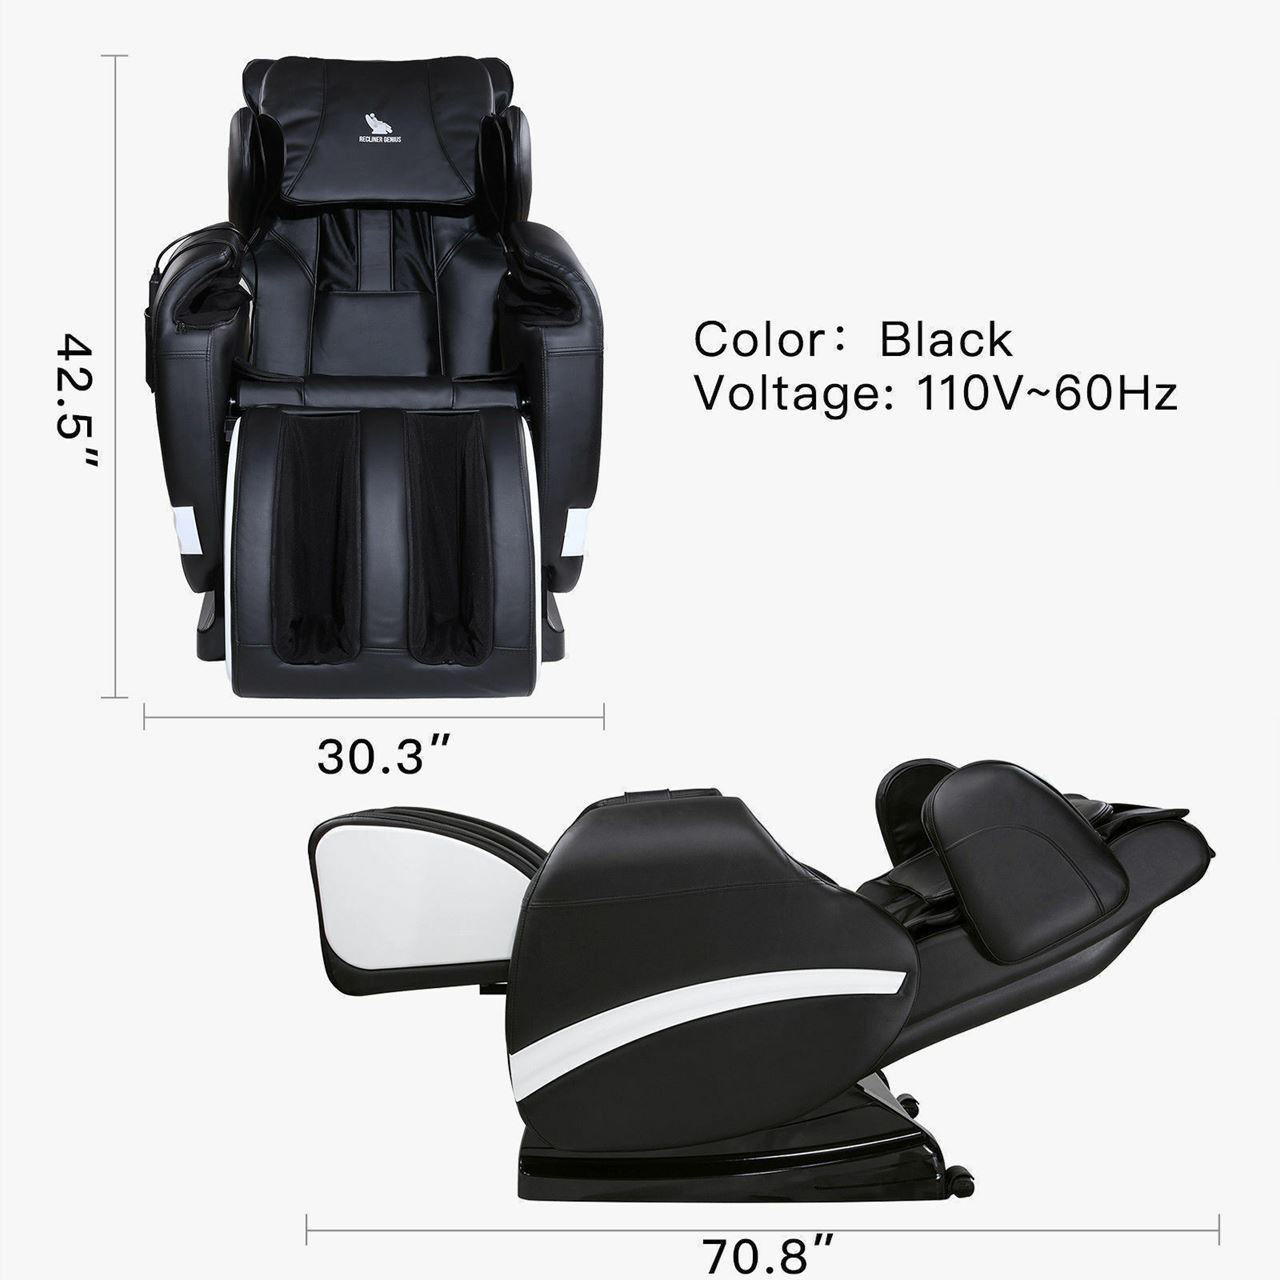 Picture of Recliner Massage Chair with Heat Zero Gravity - Black